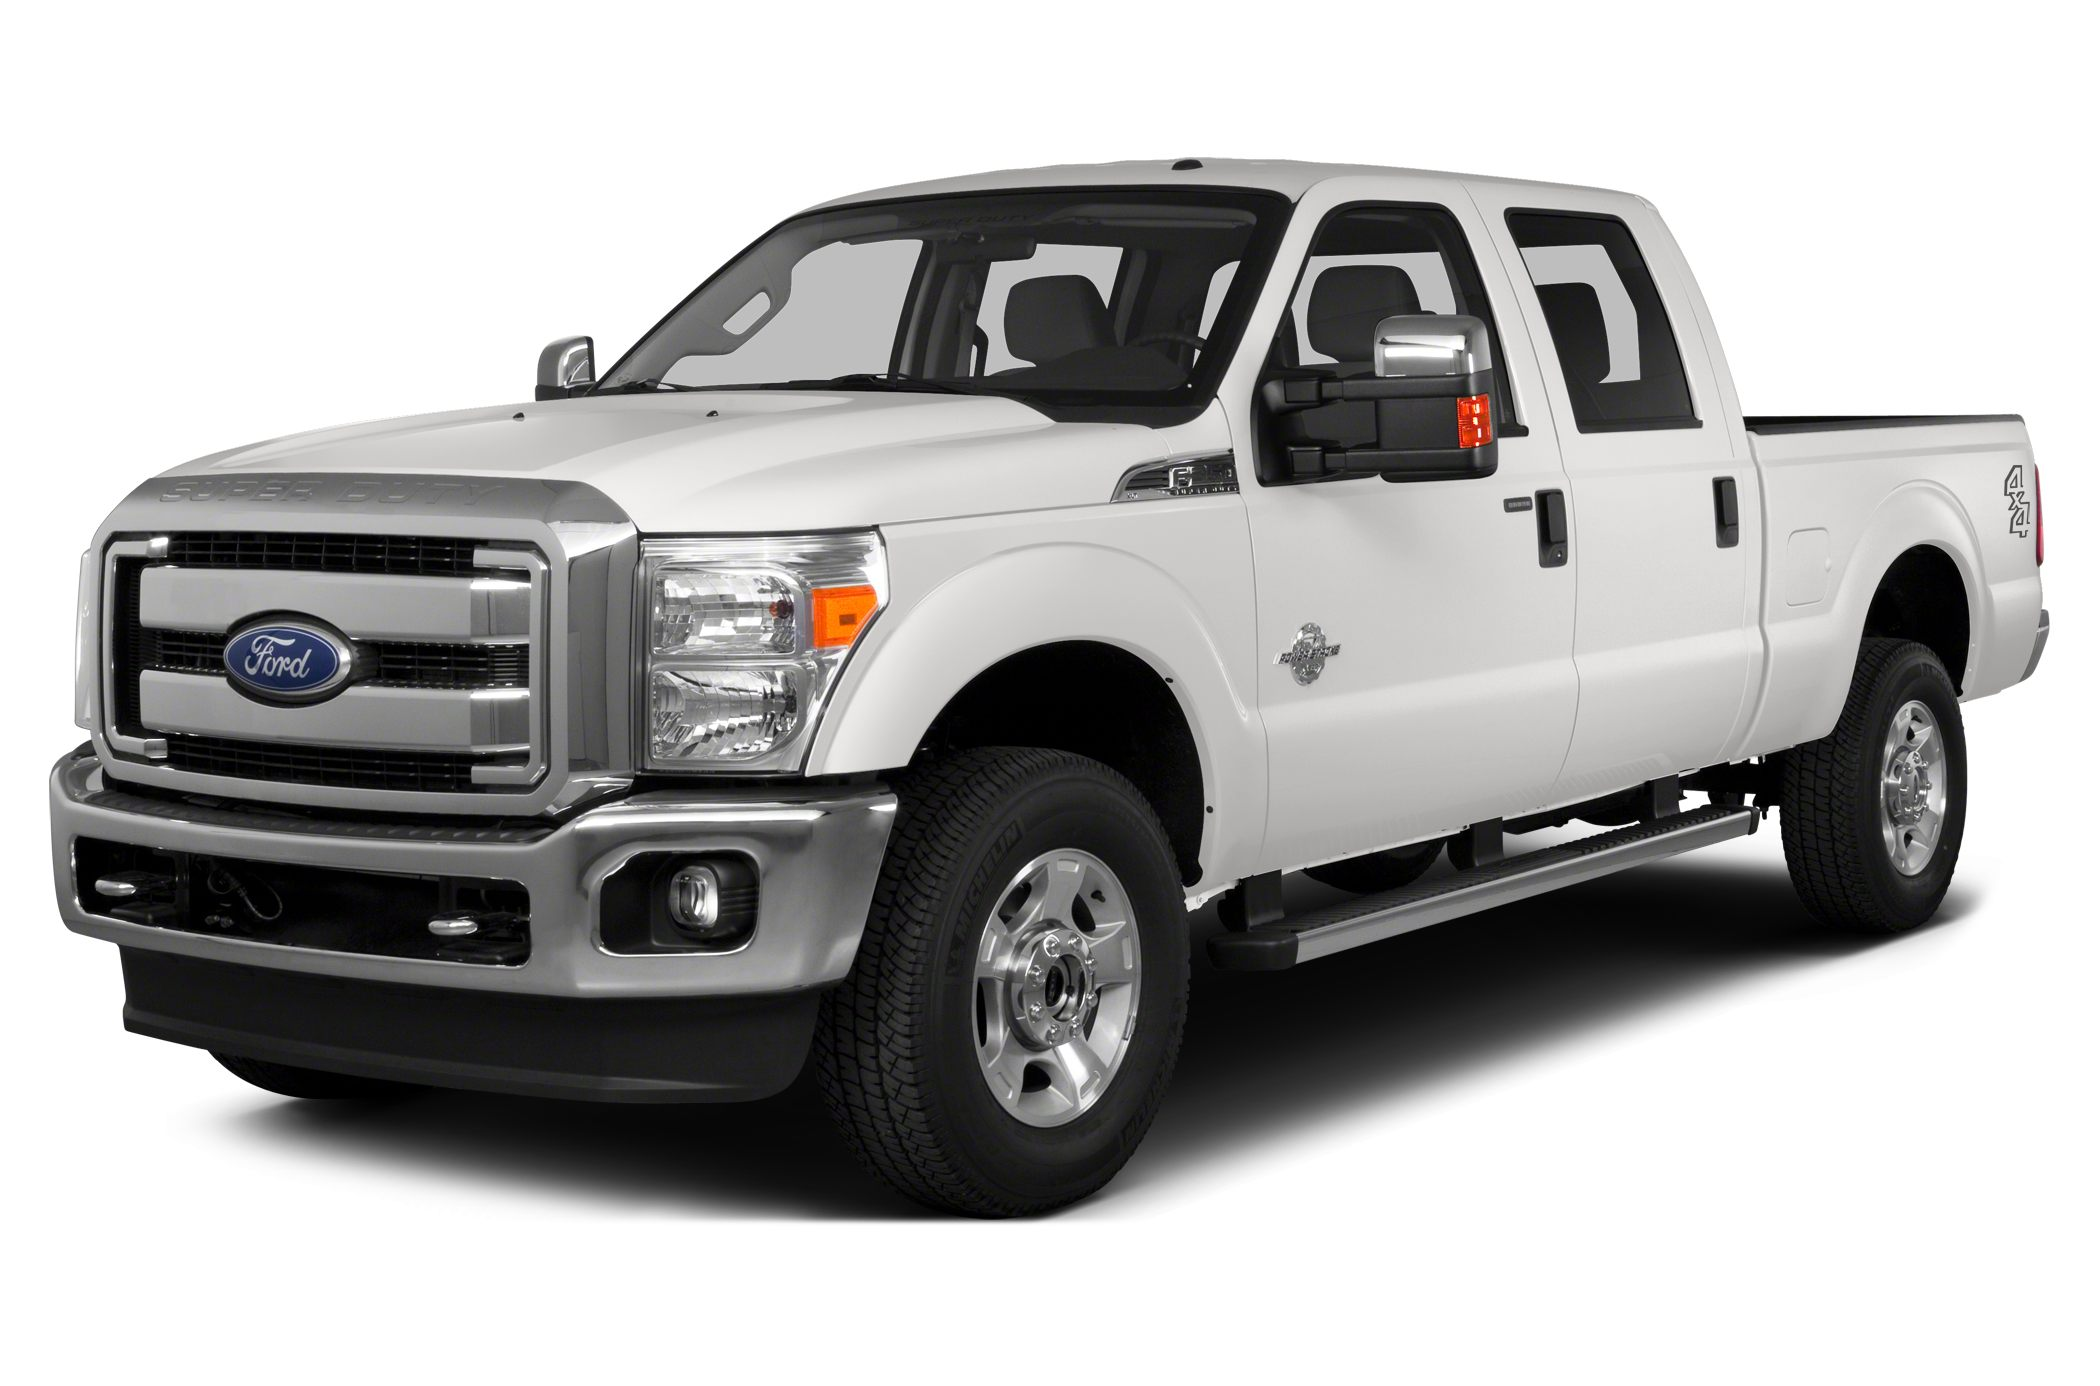 2015 Ford F-350 Glam